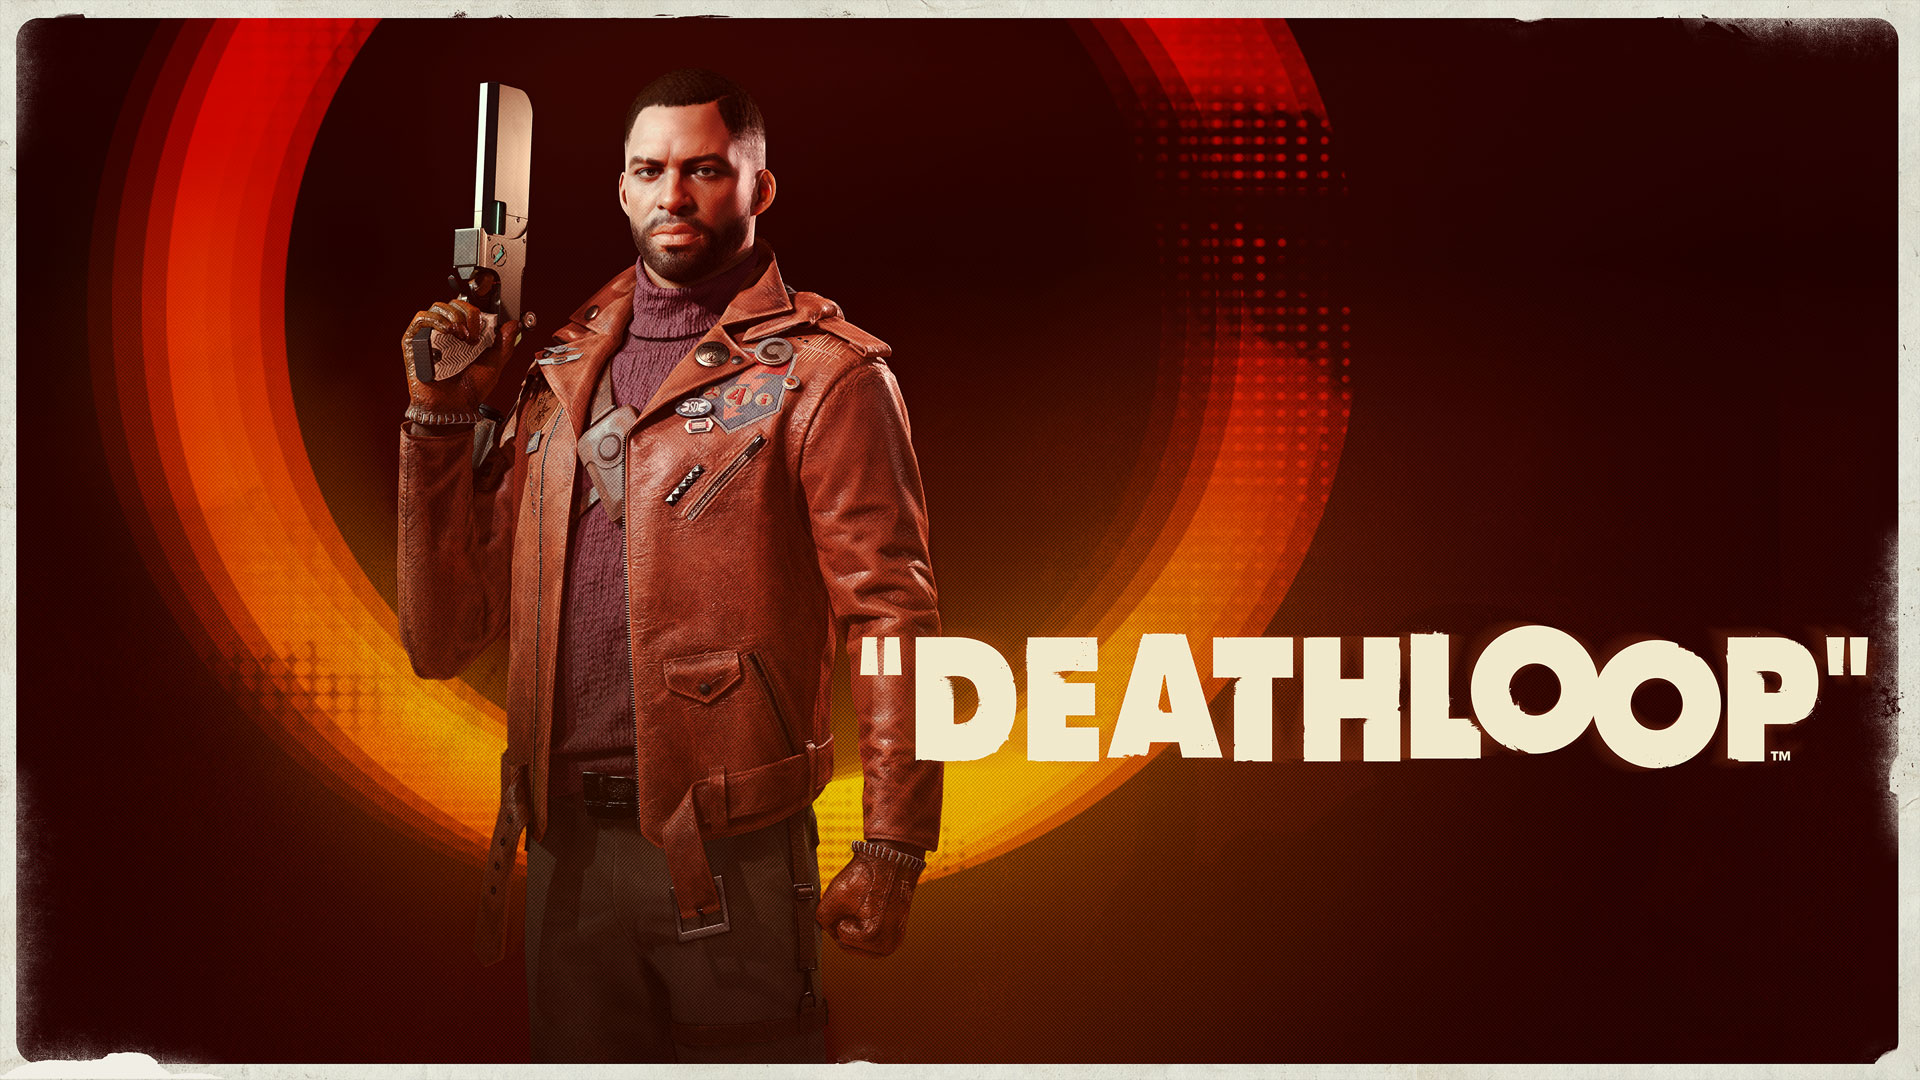 """DEATHLOOP""""   Official Website   First-Person Action from Arkane Lyon    Bethesda.net"""